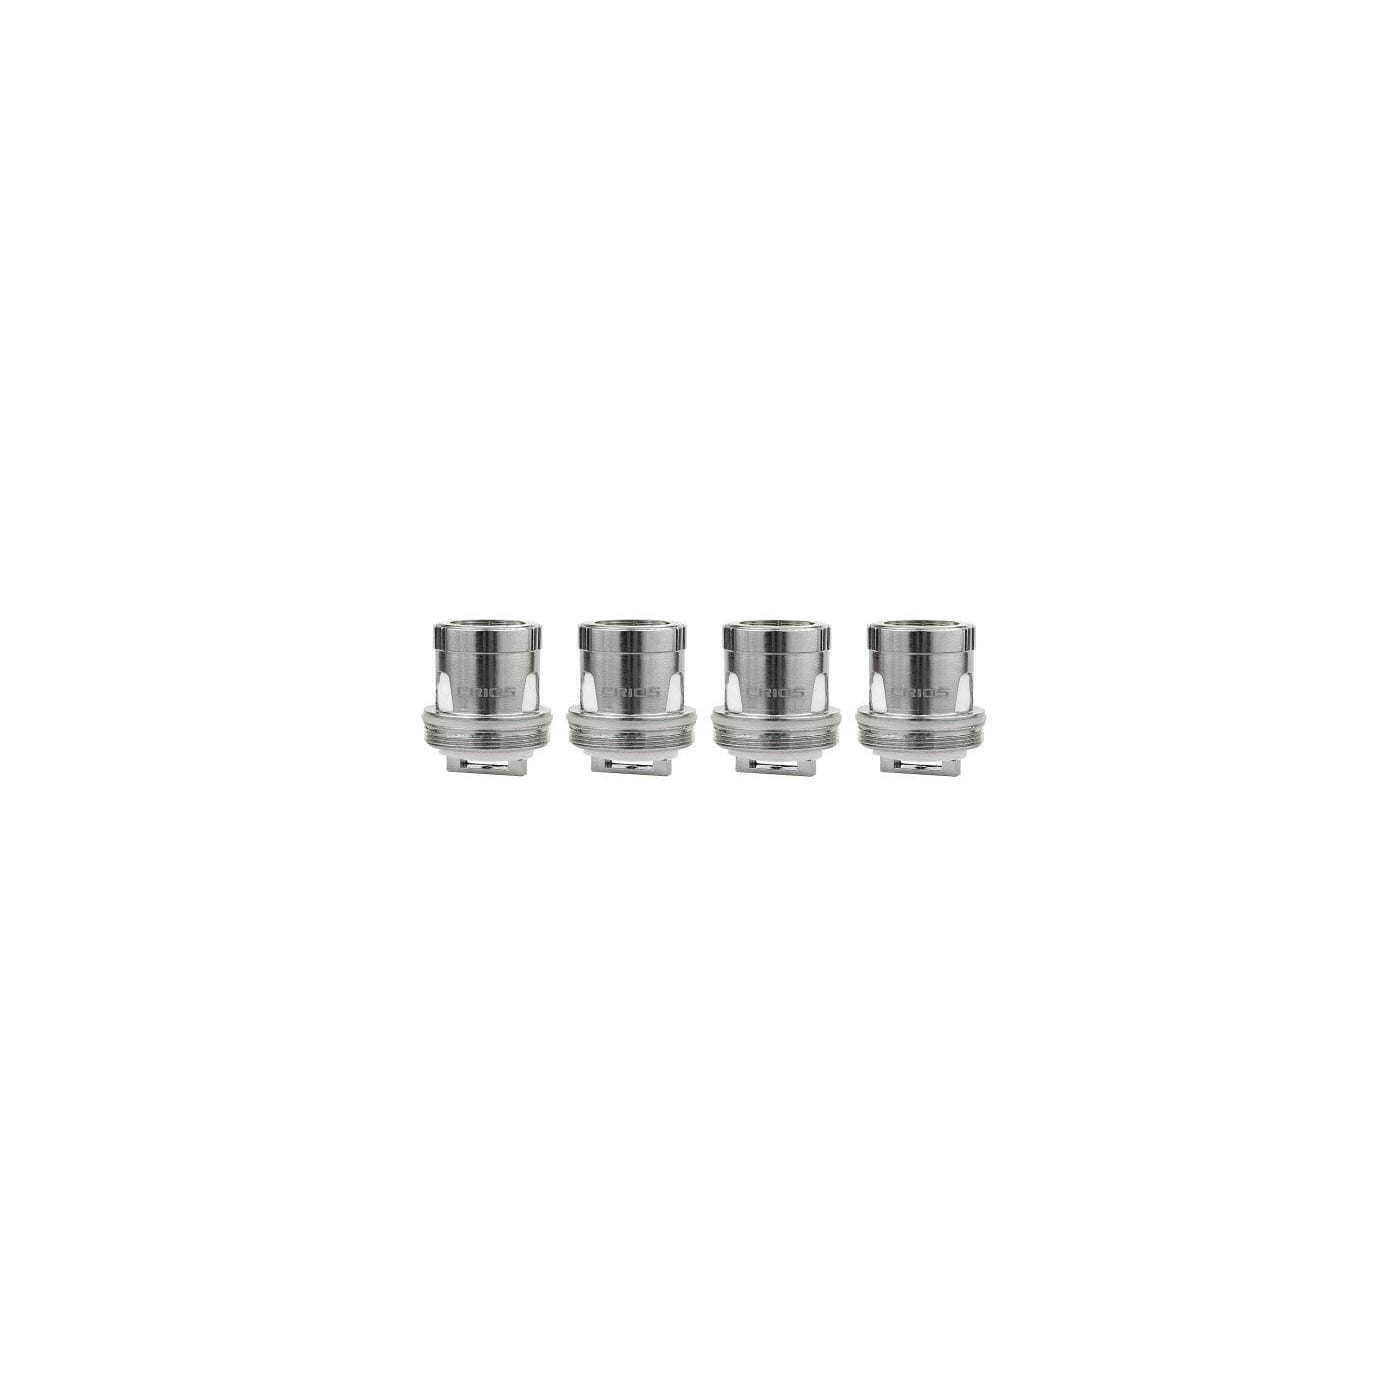 Innokin Crios Replacement Coil - 4 Pack - 0.65 Ohm